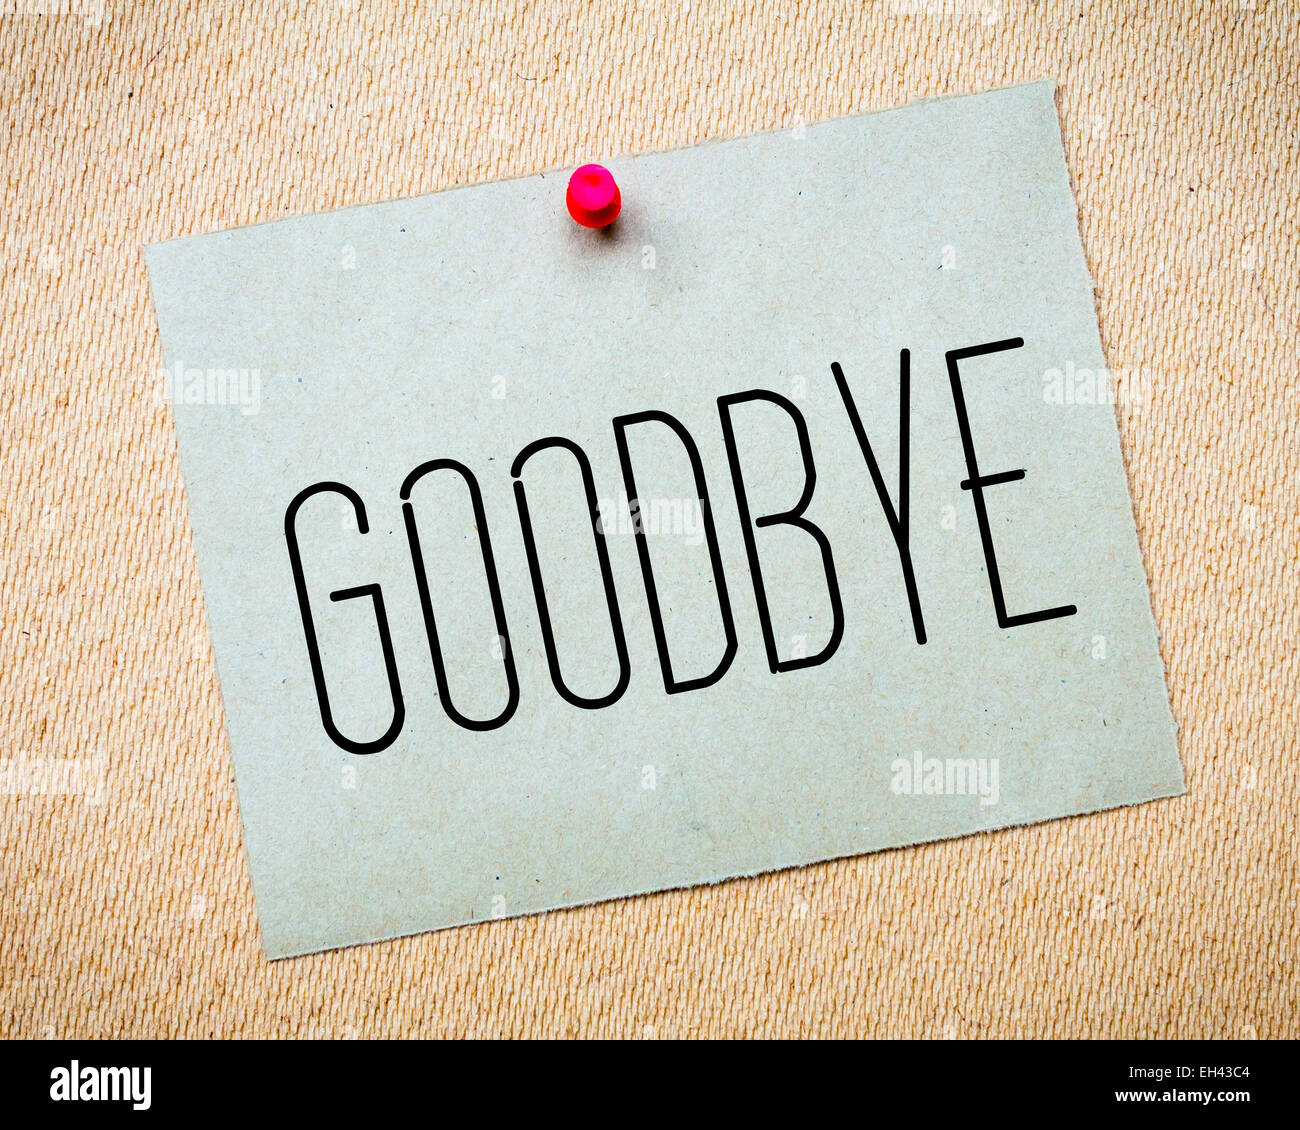 Goodbye Message On Paper Note Stockfotos & Goodbye Message On Paper ...